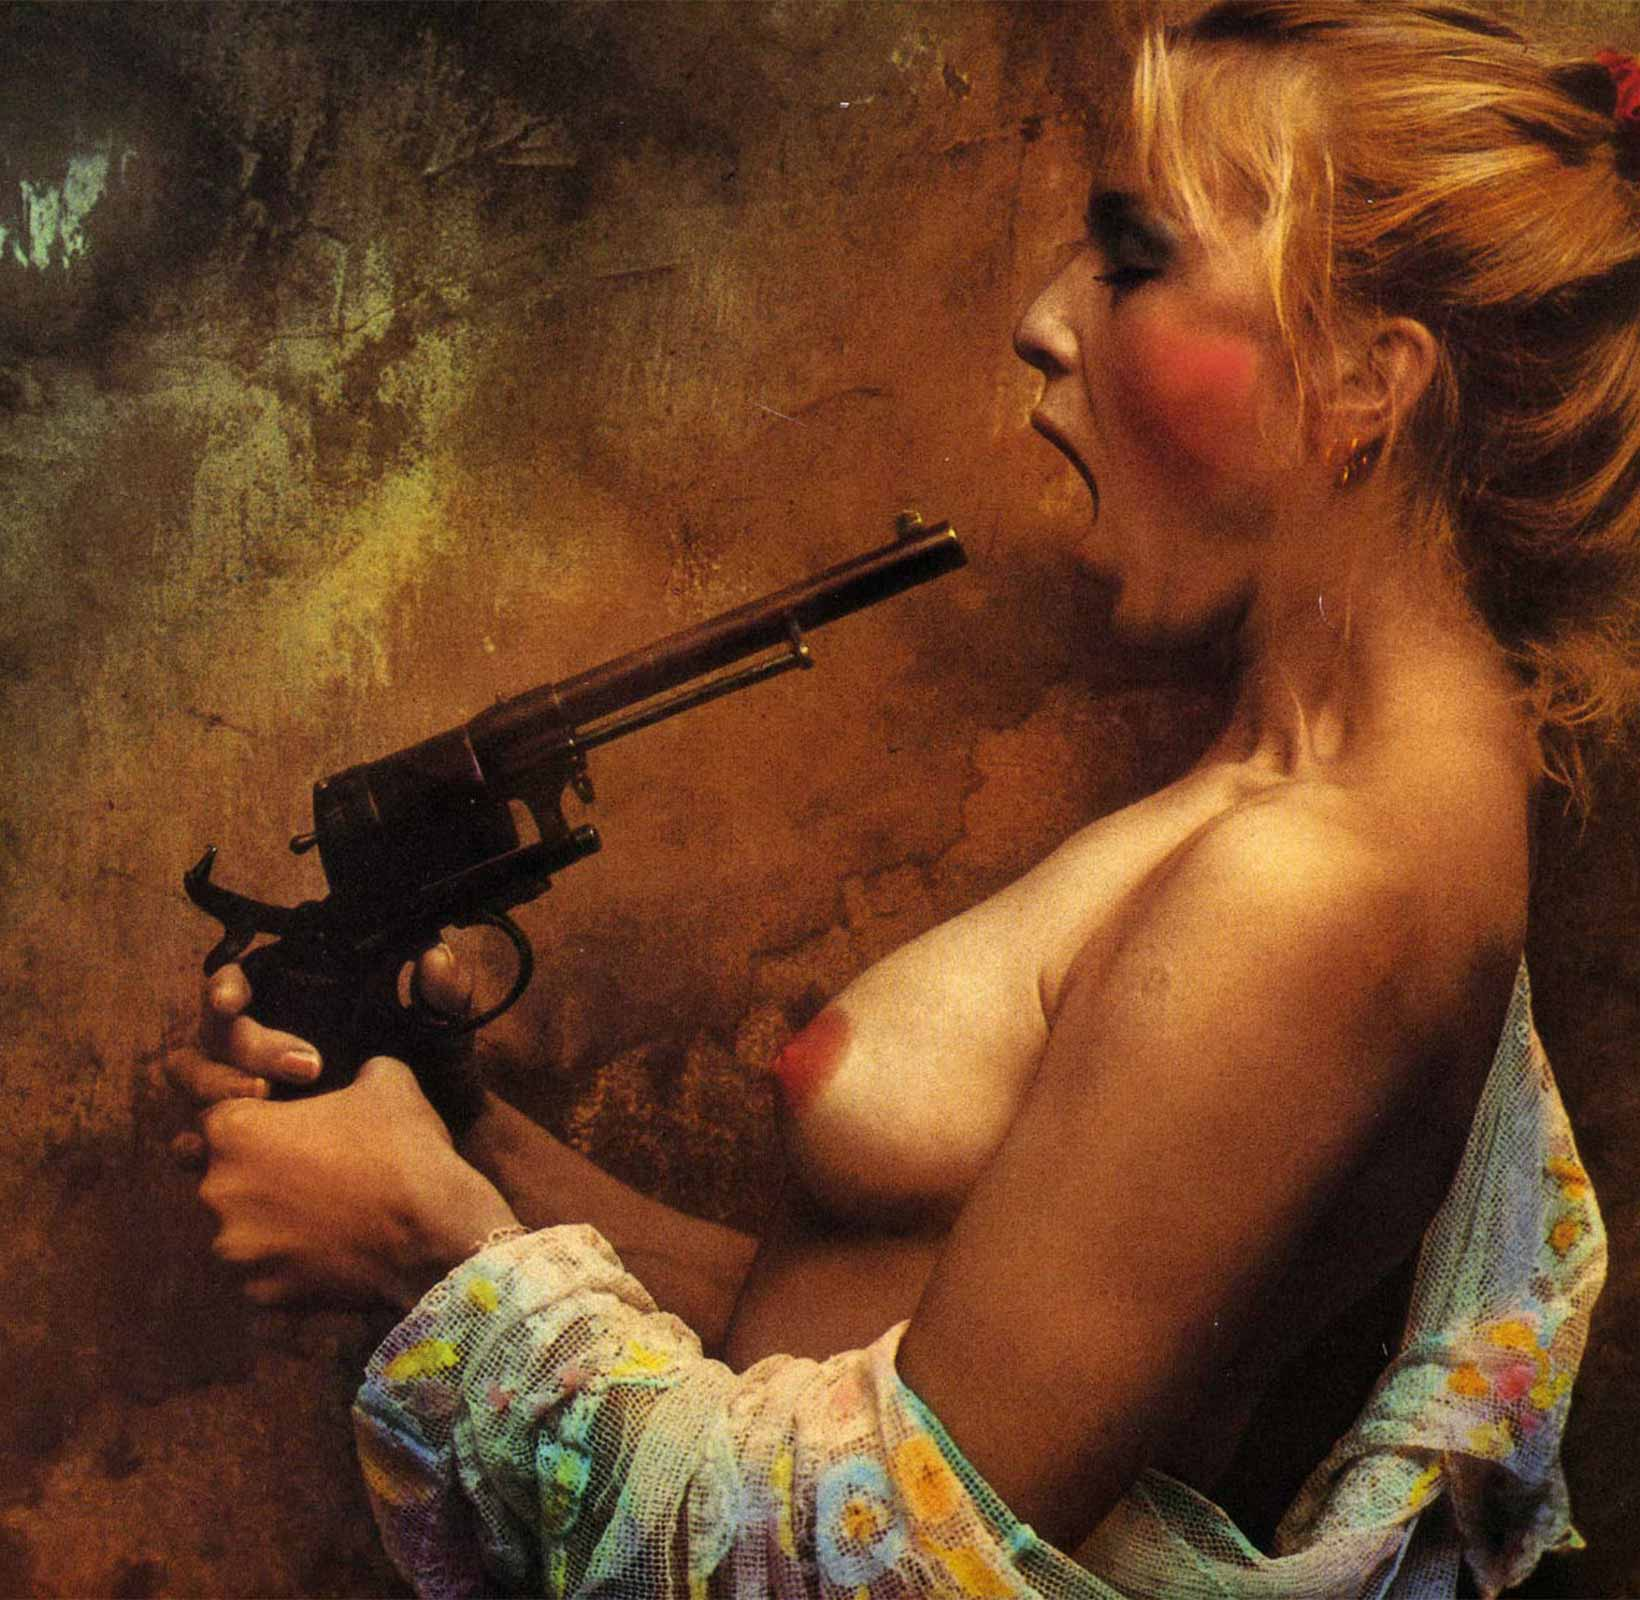 Goodbye Jan (woman with gun) by Jan Saudek